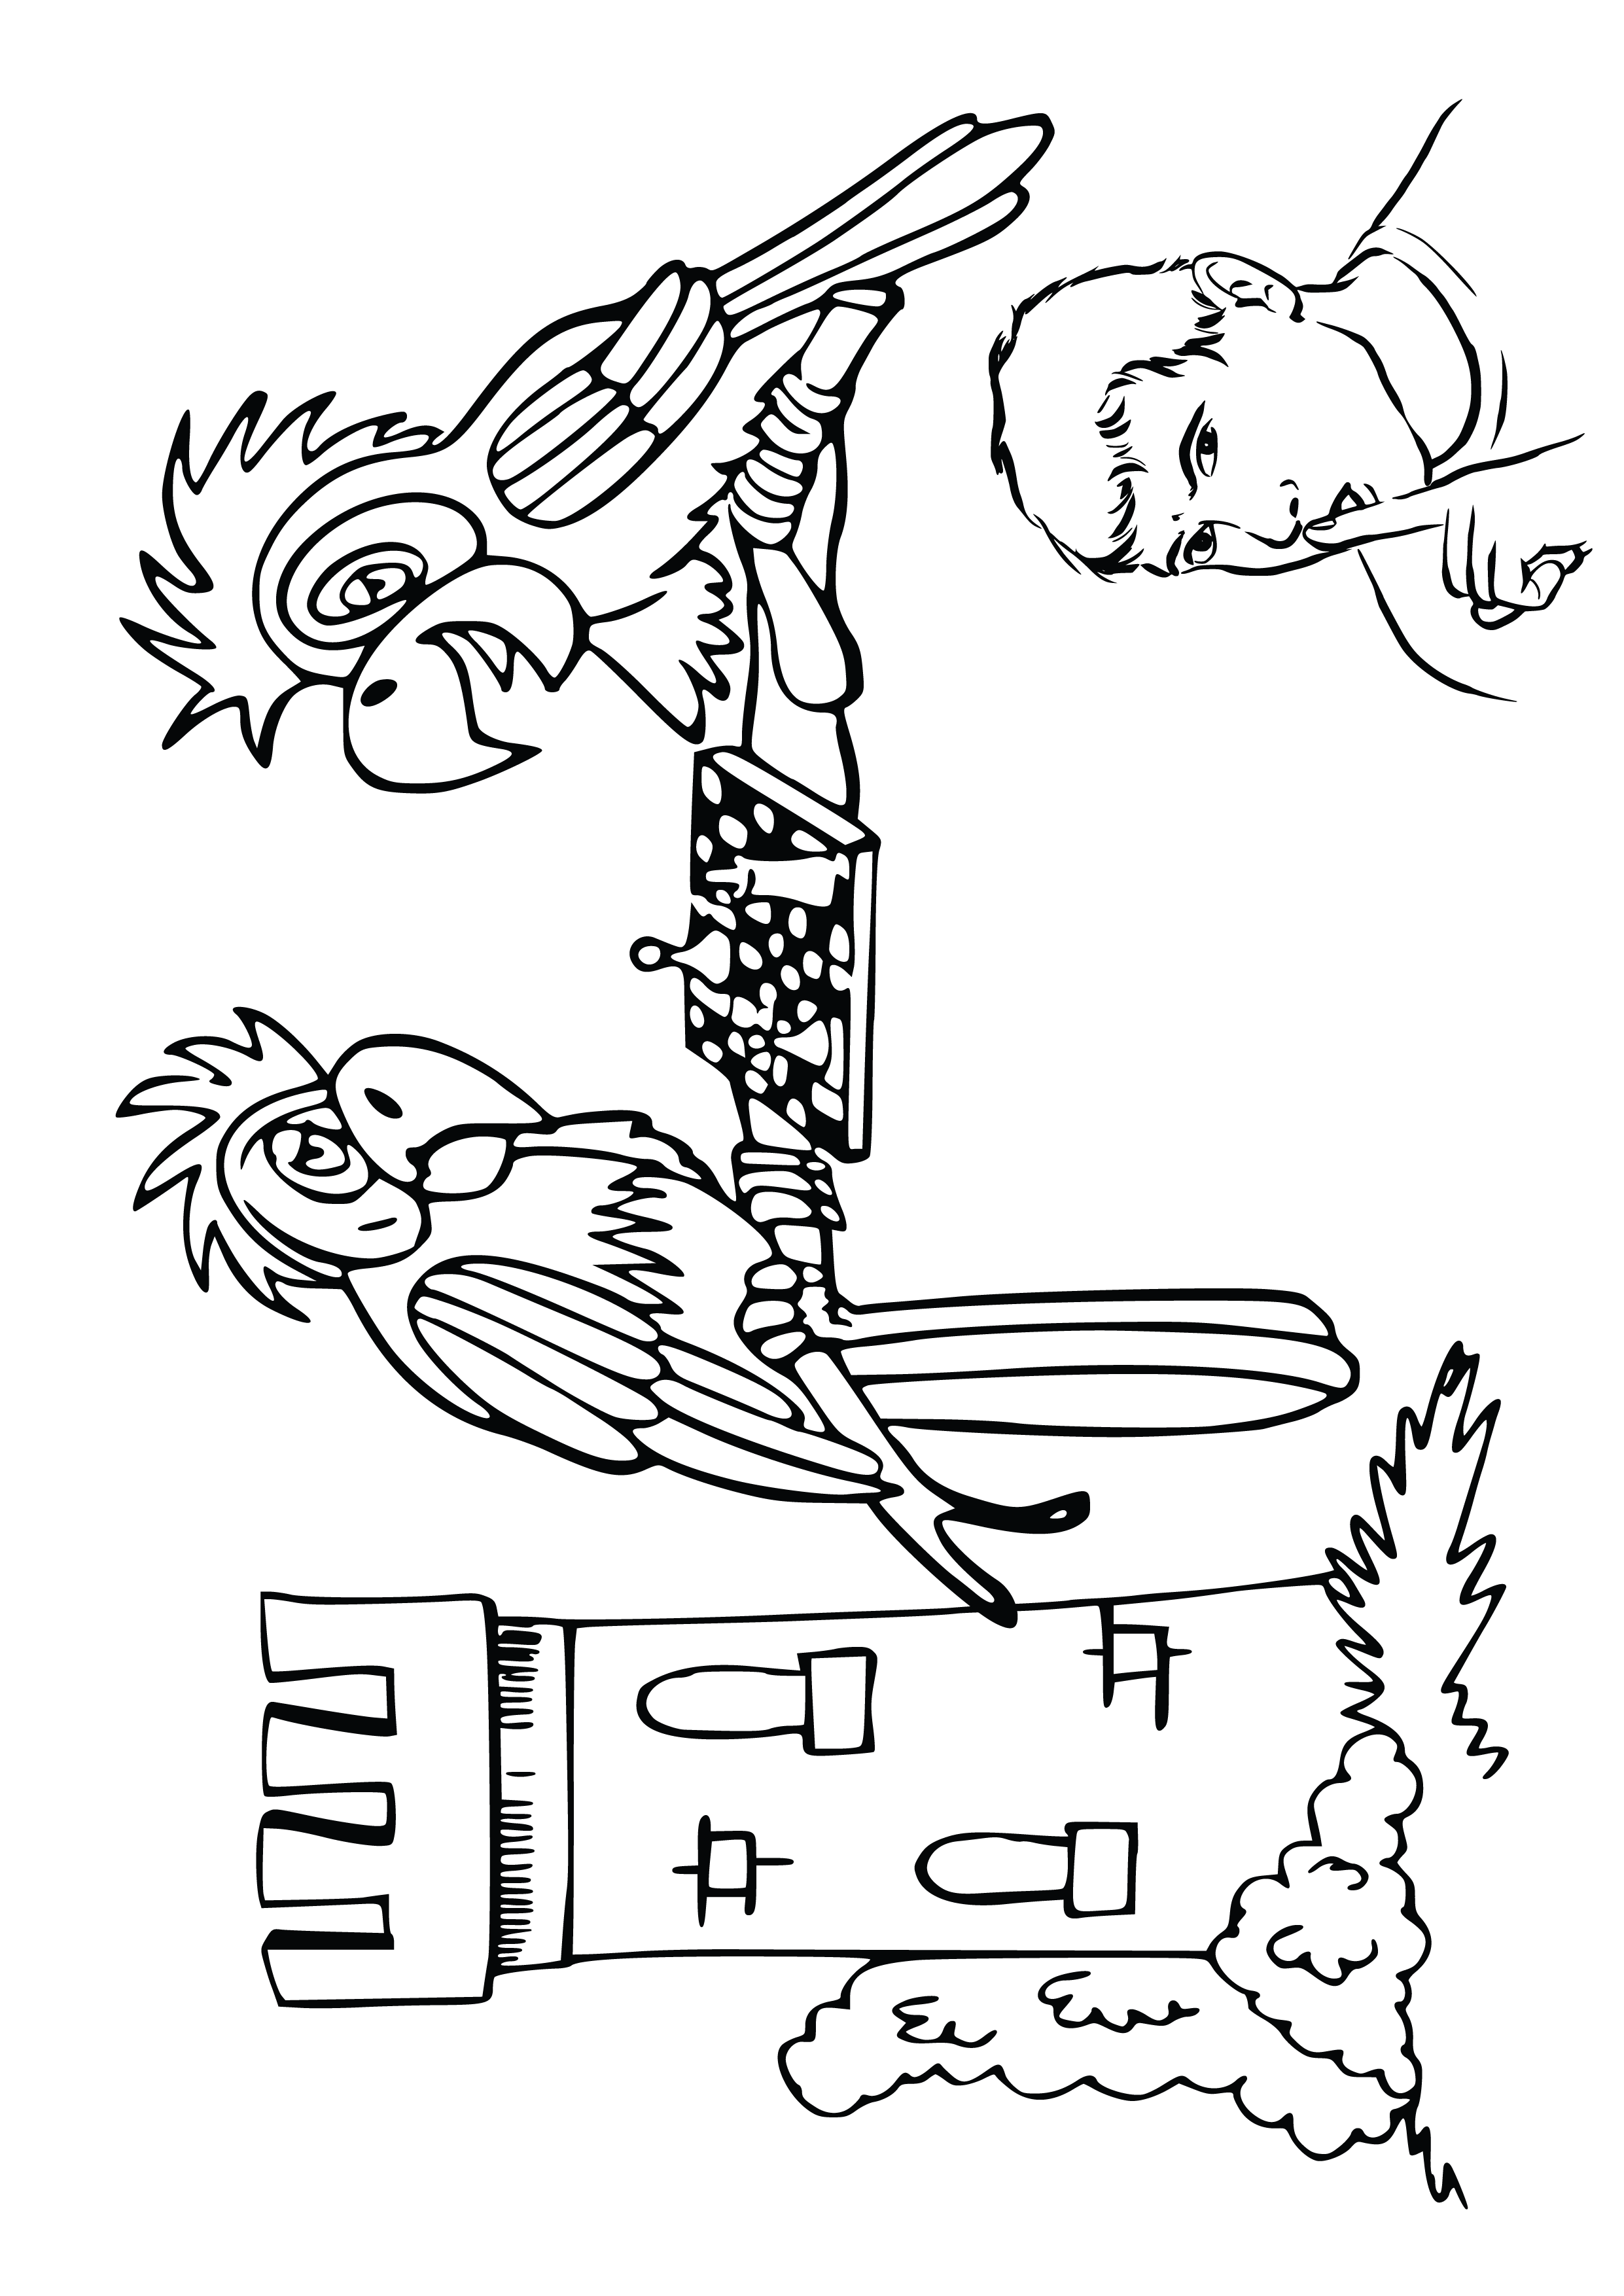 People Free Clipart Coloring Pages for Kids Adults Art Activities Line Art 34